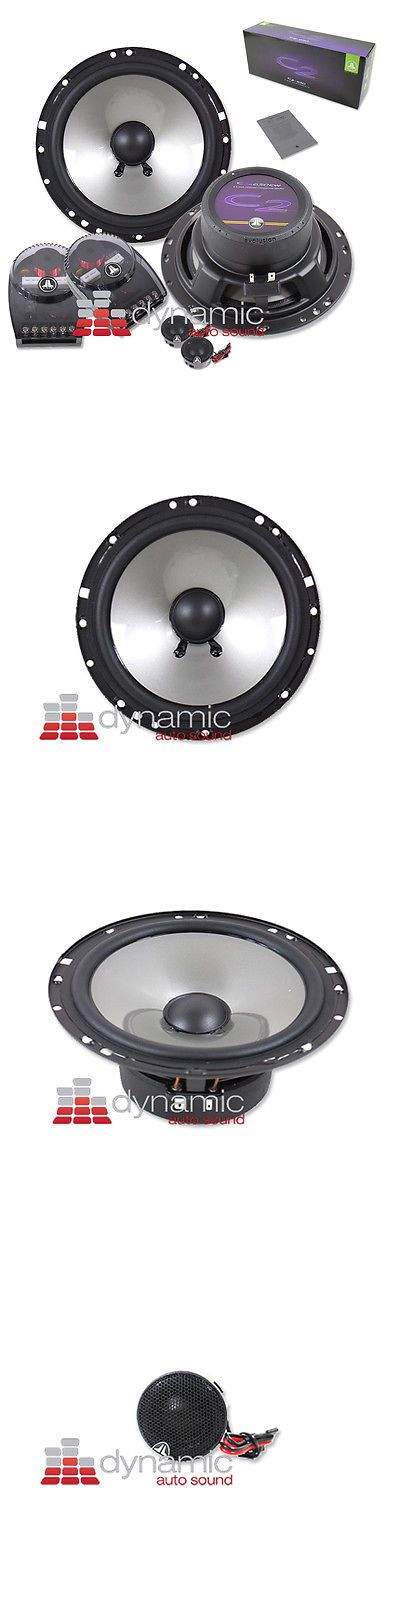 "Car Speakers and Speaker Systems: Jl Audio C2-650 Component Car Stereo Speakers 6.5"" 2-Way 200 Watts C2650 New BUY IT NOW ONLY: $159.95"